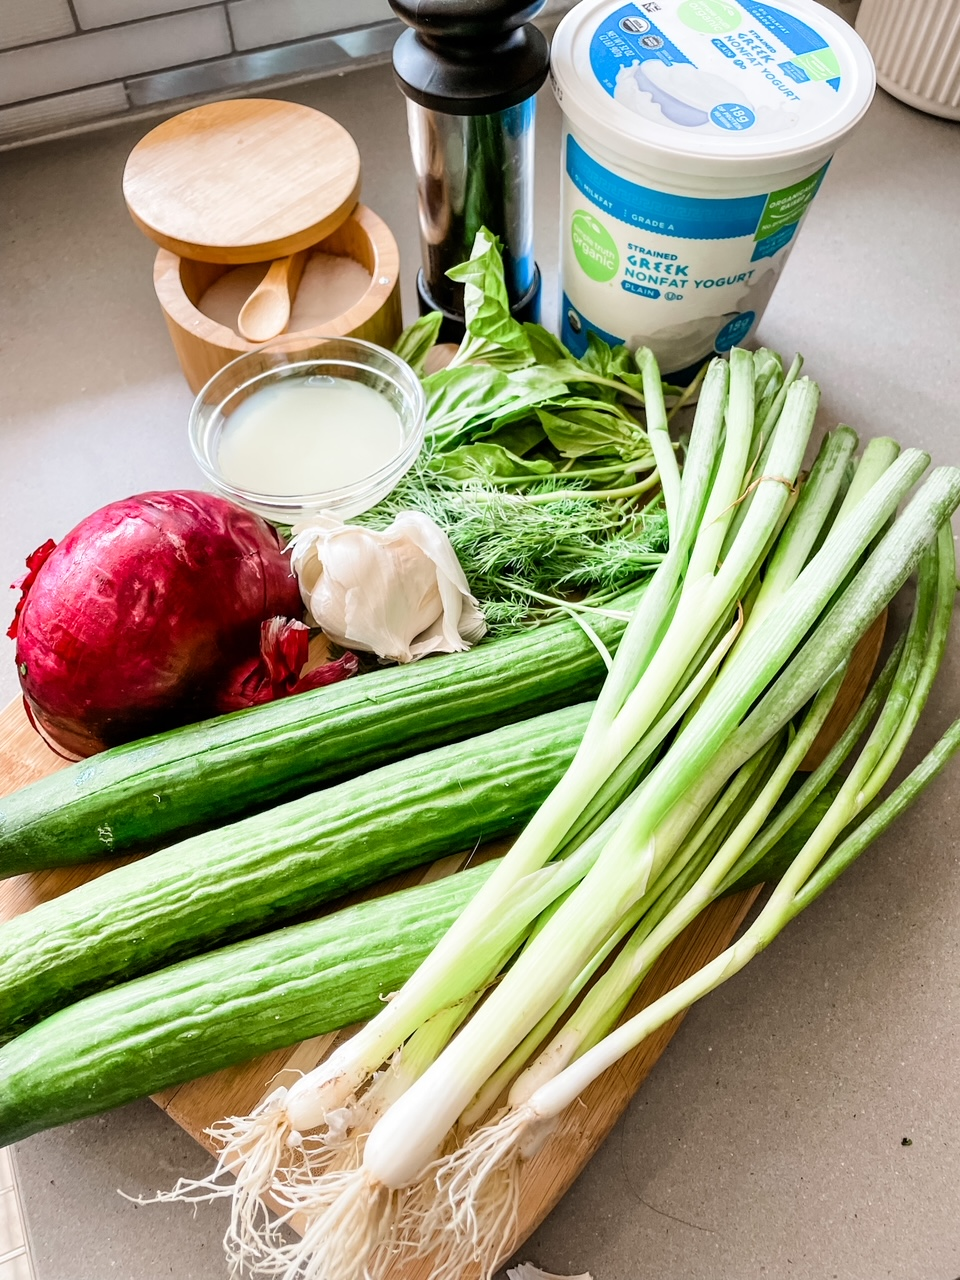 The ingredients for the Cold Cucumber Soup laid out on a countertop - cucumbers, green onion, greek yogurt, red onion, salt, and pepper